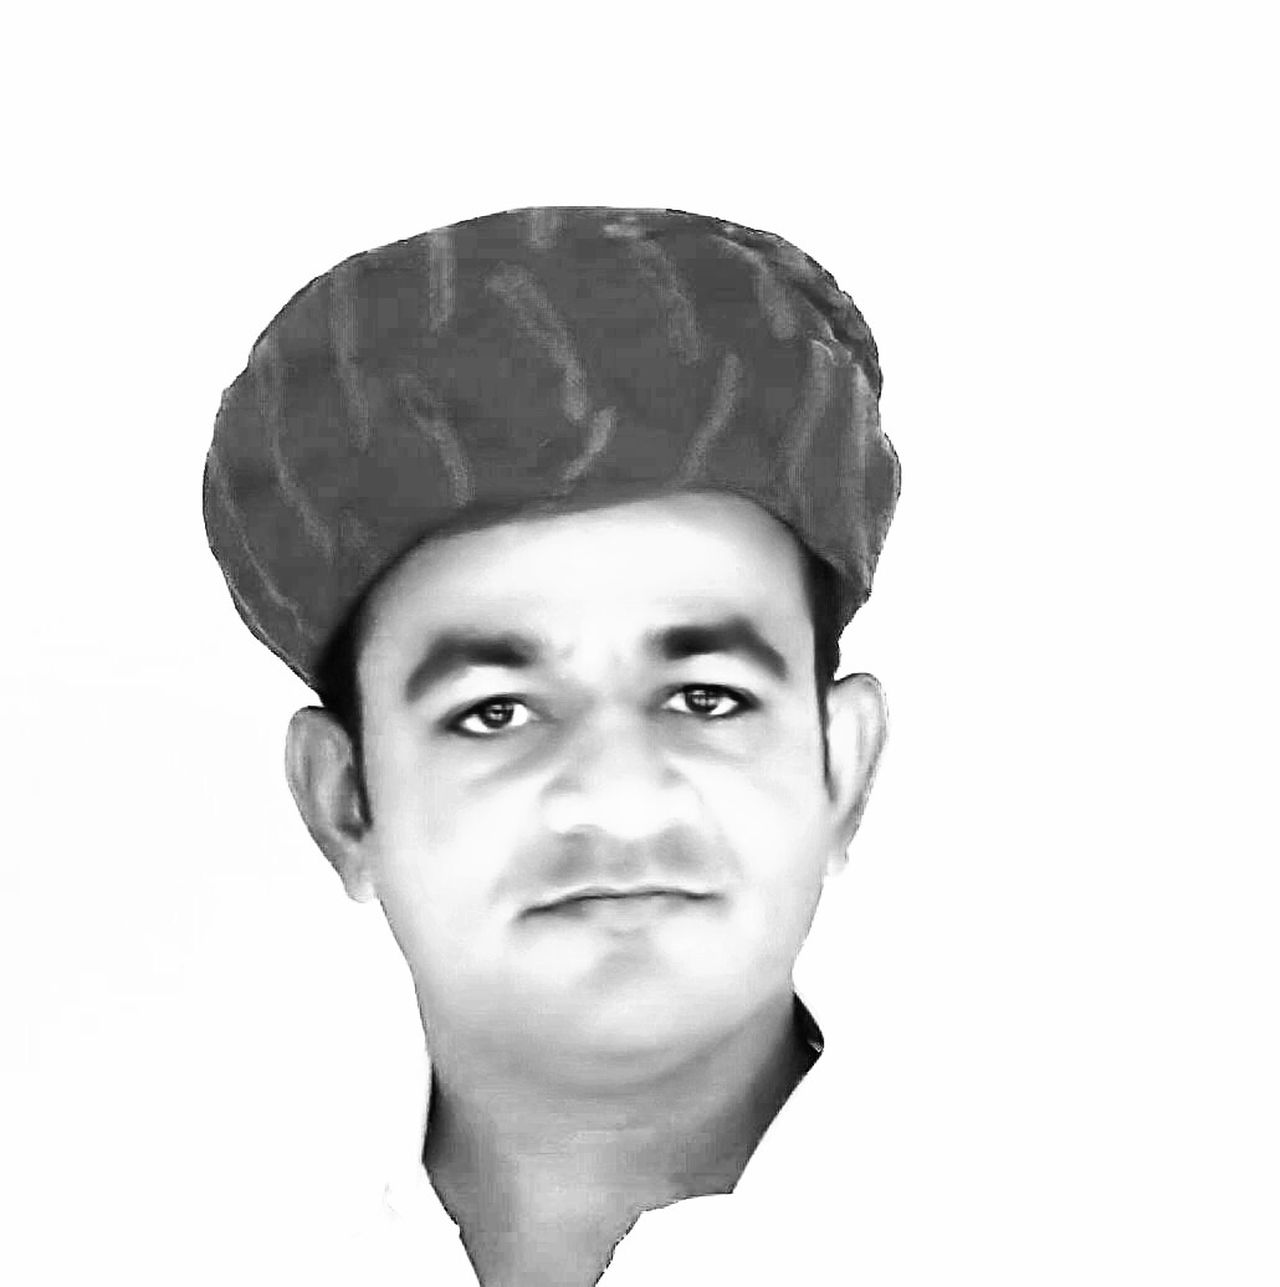 Me. Rajasthani Dressed Up Rajasthan Rajasthani Culture Rajasthan Beauty Rajasthan India Turban Safha On Head Jai Rajasthan JRPphotography Headshot Young Adult Human Face White Background Close-up Looking At Camera Uniqe One Person EyeEmNewHere Wounderful Confidence  Cheerful Boy Adults Only Handsome Man BYOPaper!